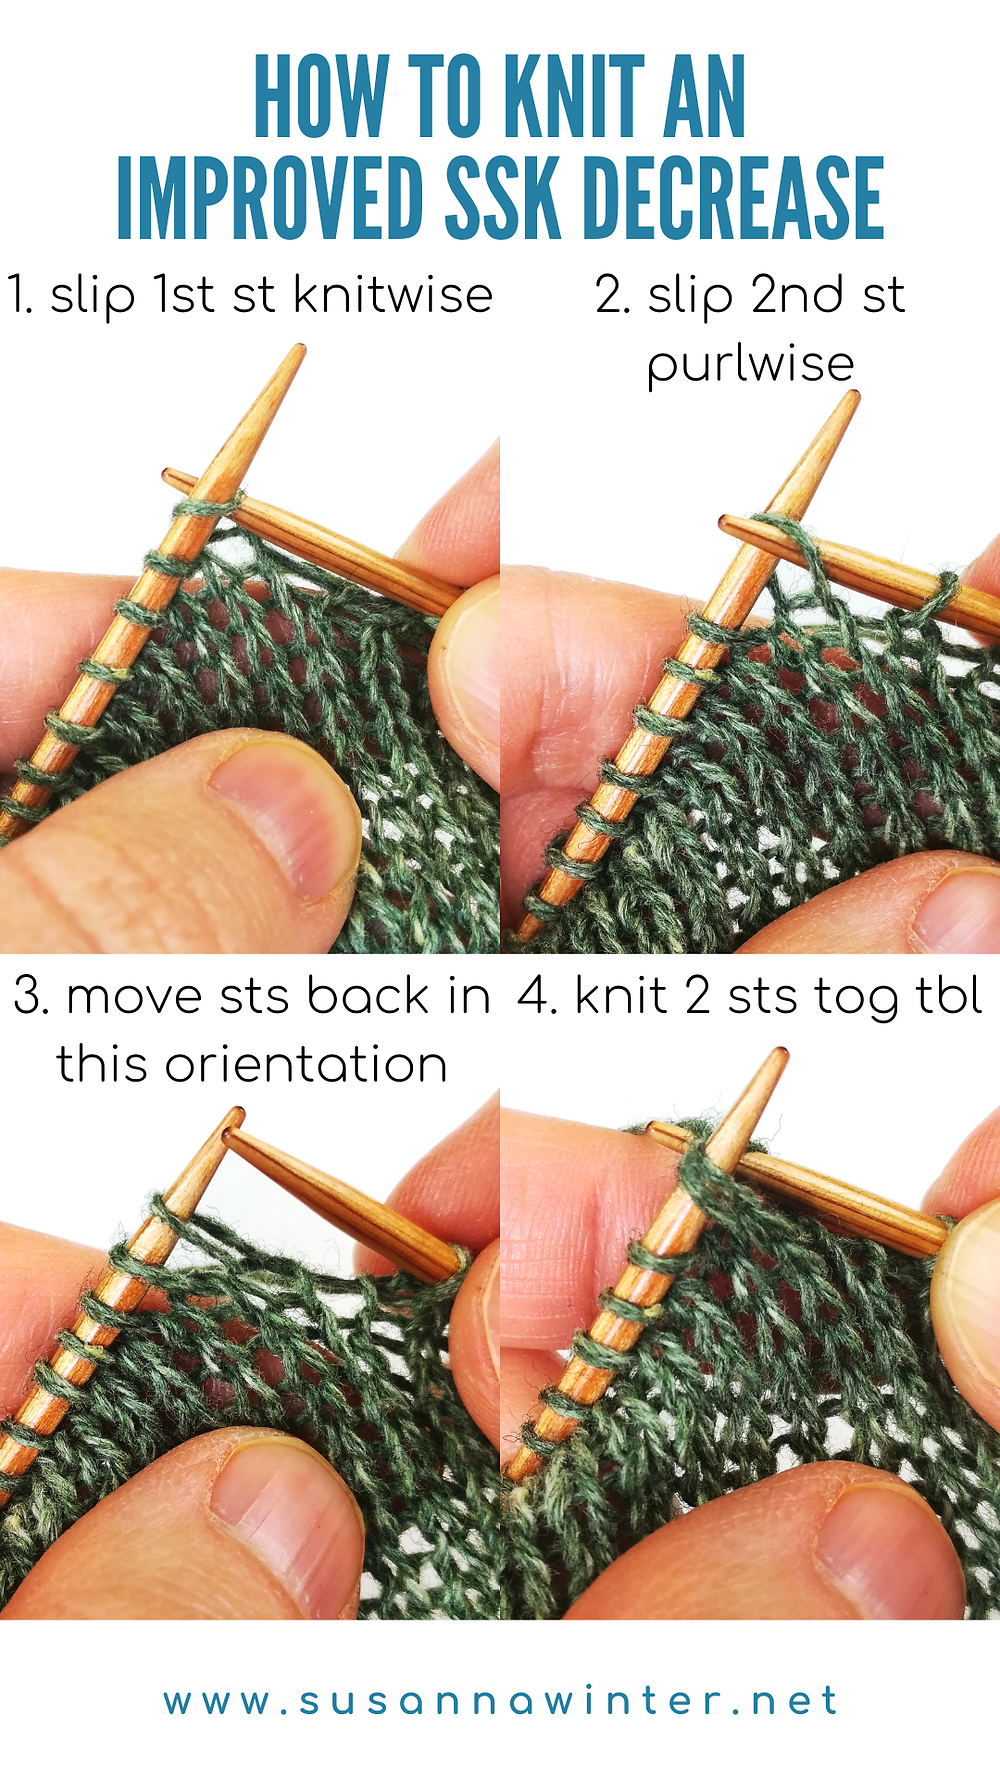 A four-step photo tutorial on how to knit an improved SSK decrease